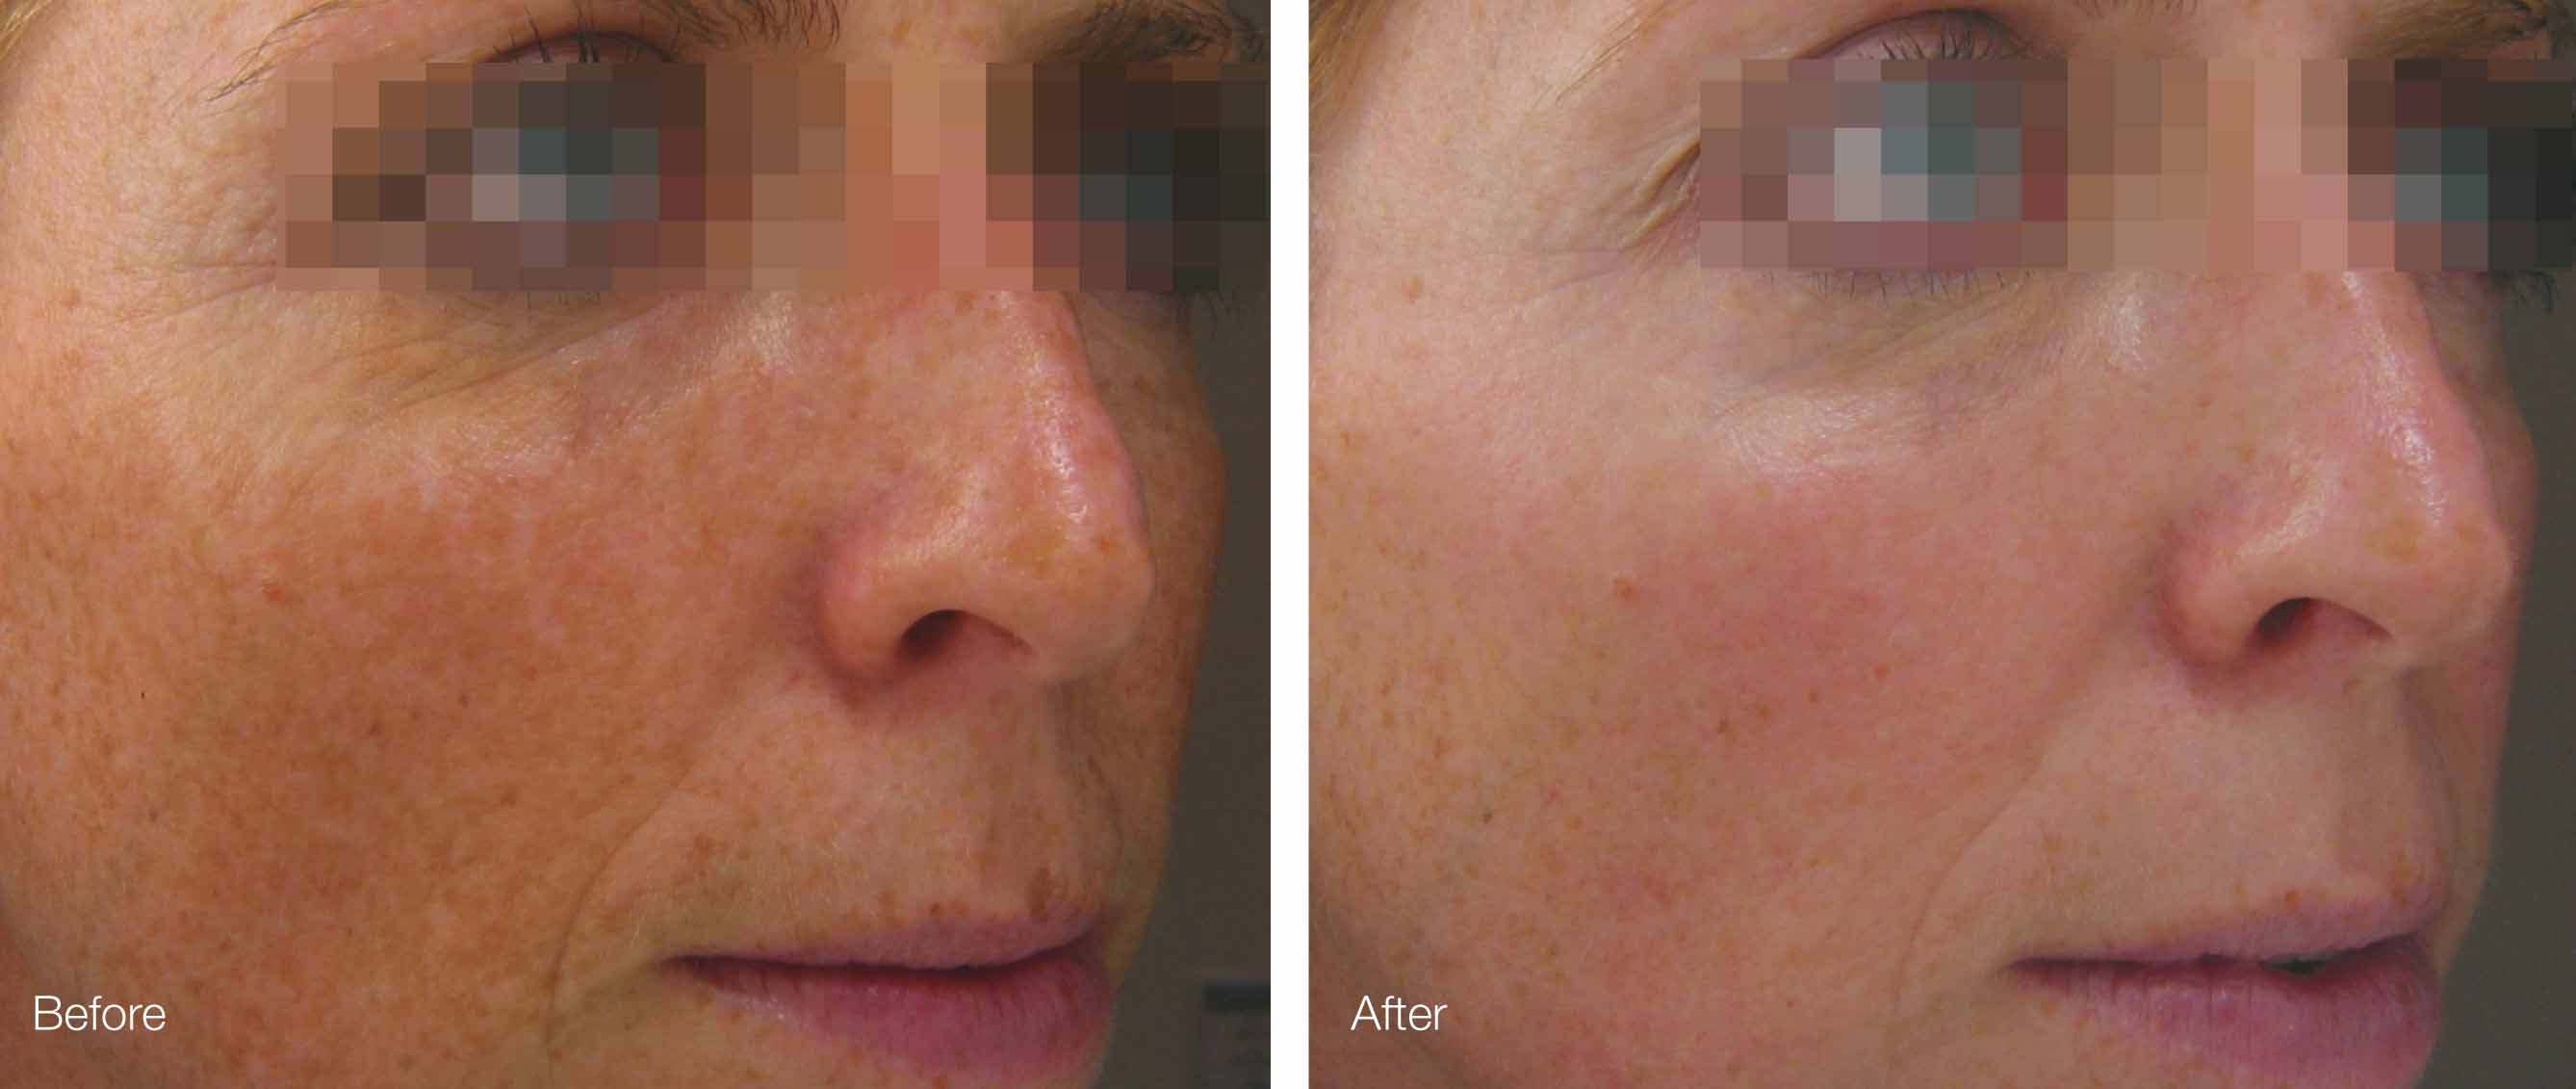 microdermabrasion and ultrasonophoresis and lactic peel before and after